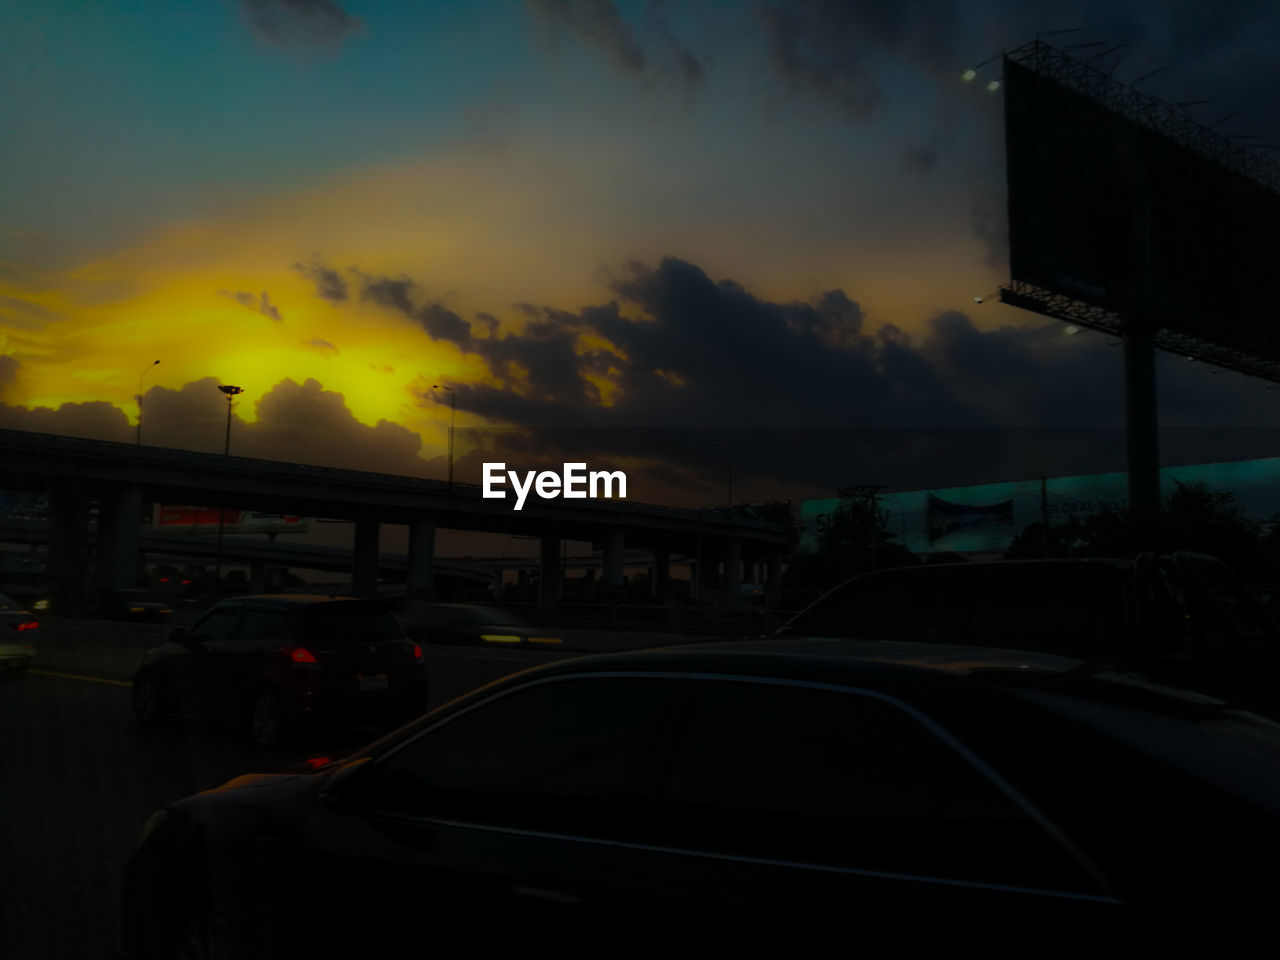 car, transportation, sunset, land vehicle, mode of transport, sky, cloud - sky, windshield, car interior, silhouette, outdoors, architecture, illuminated, city, nature, no people, day